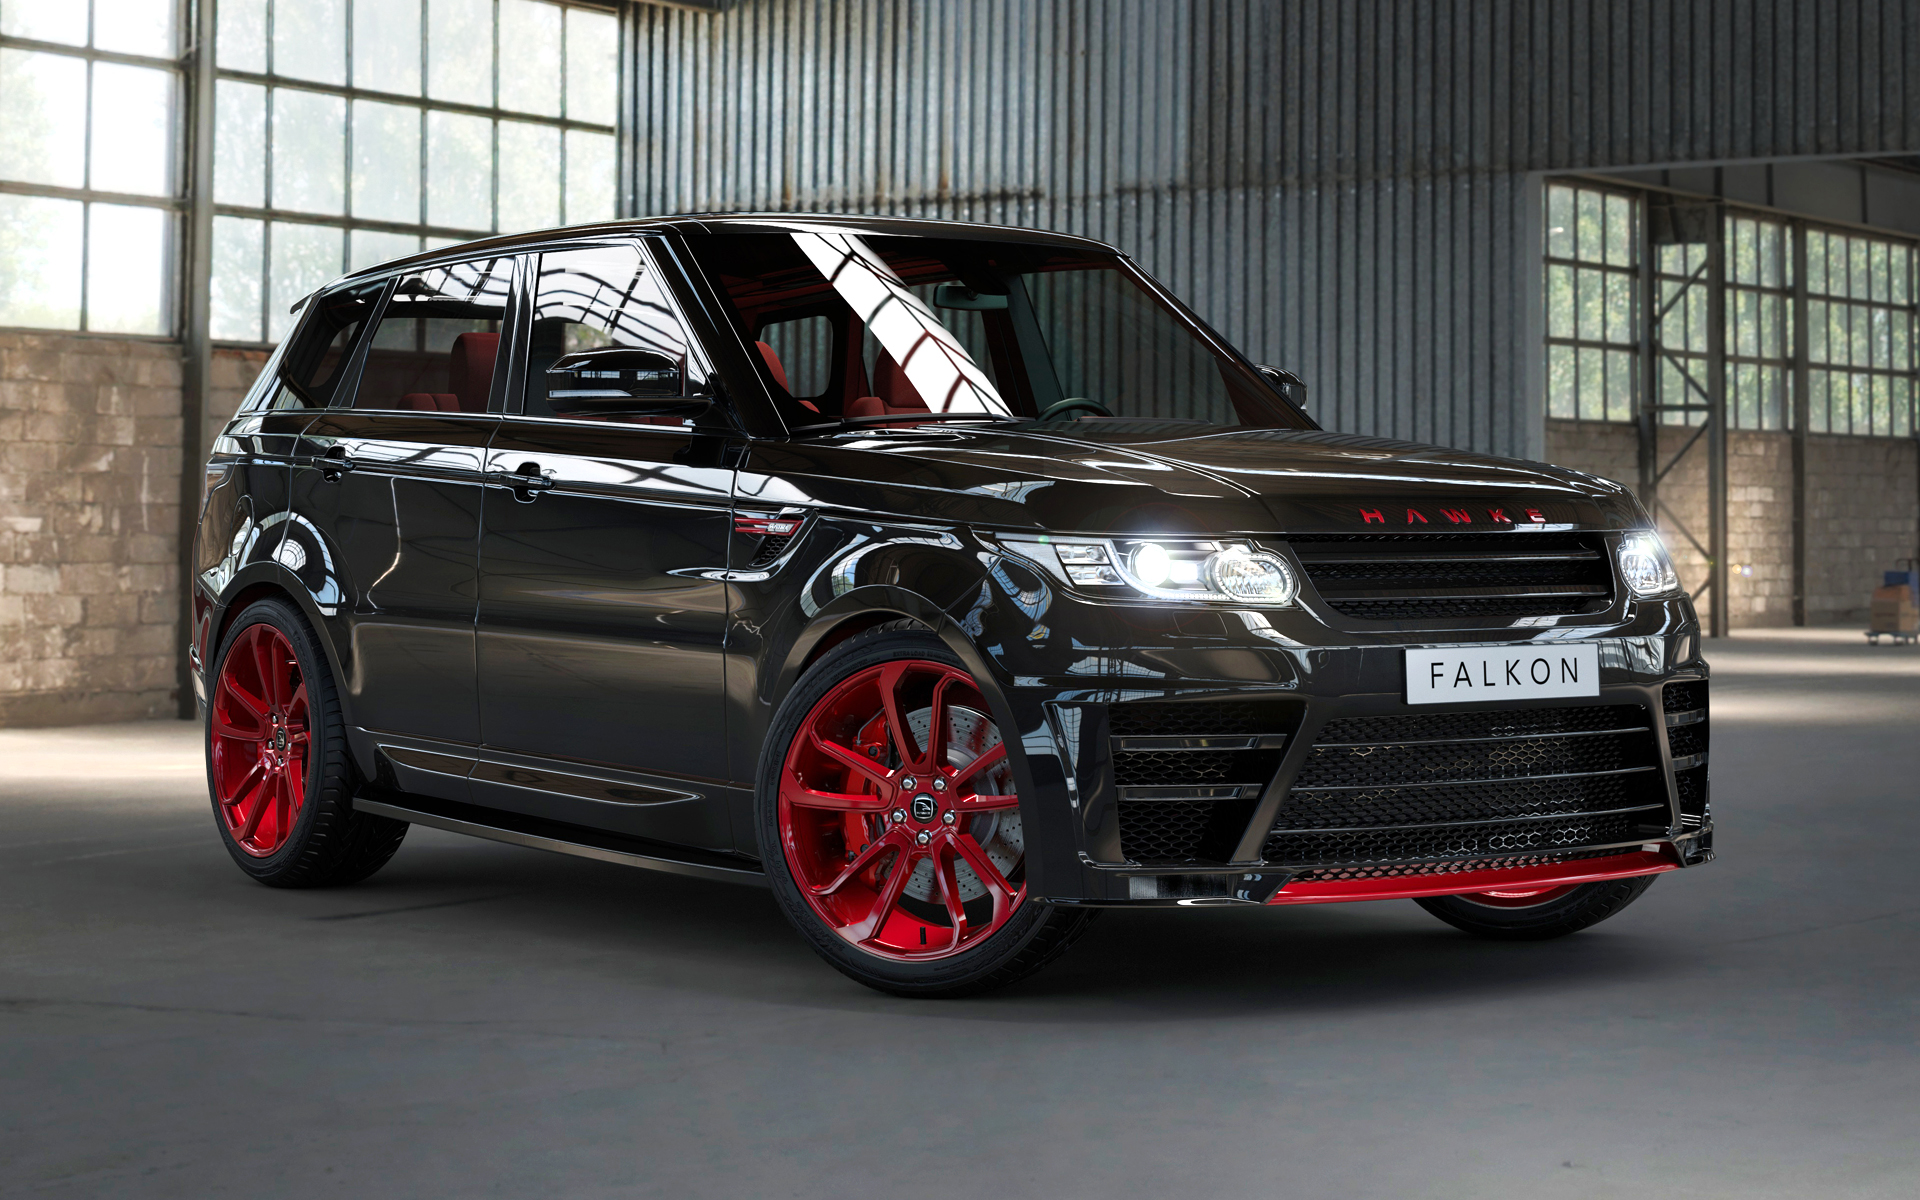 Black Range Rover Sport on HAWKE Falkon wheels in Red colour finish